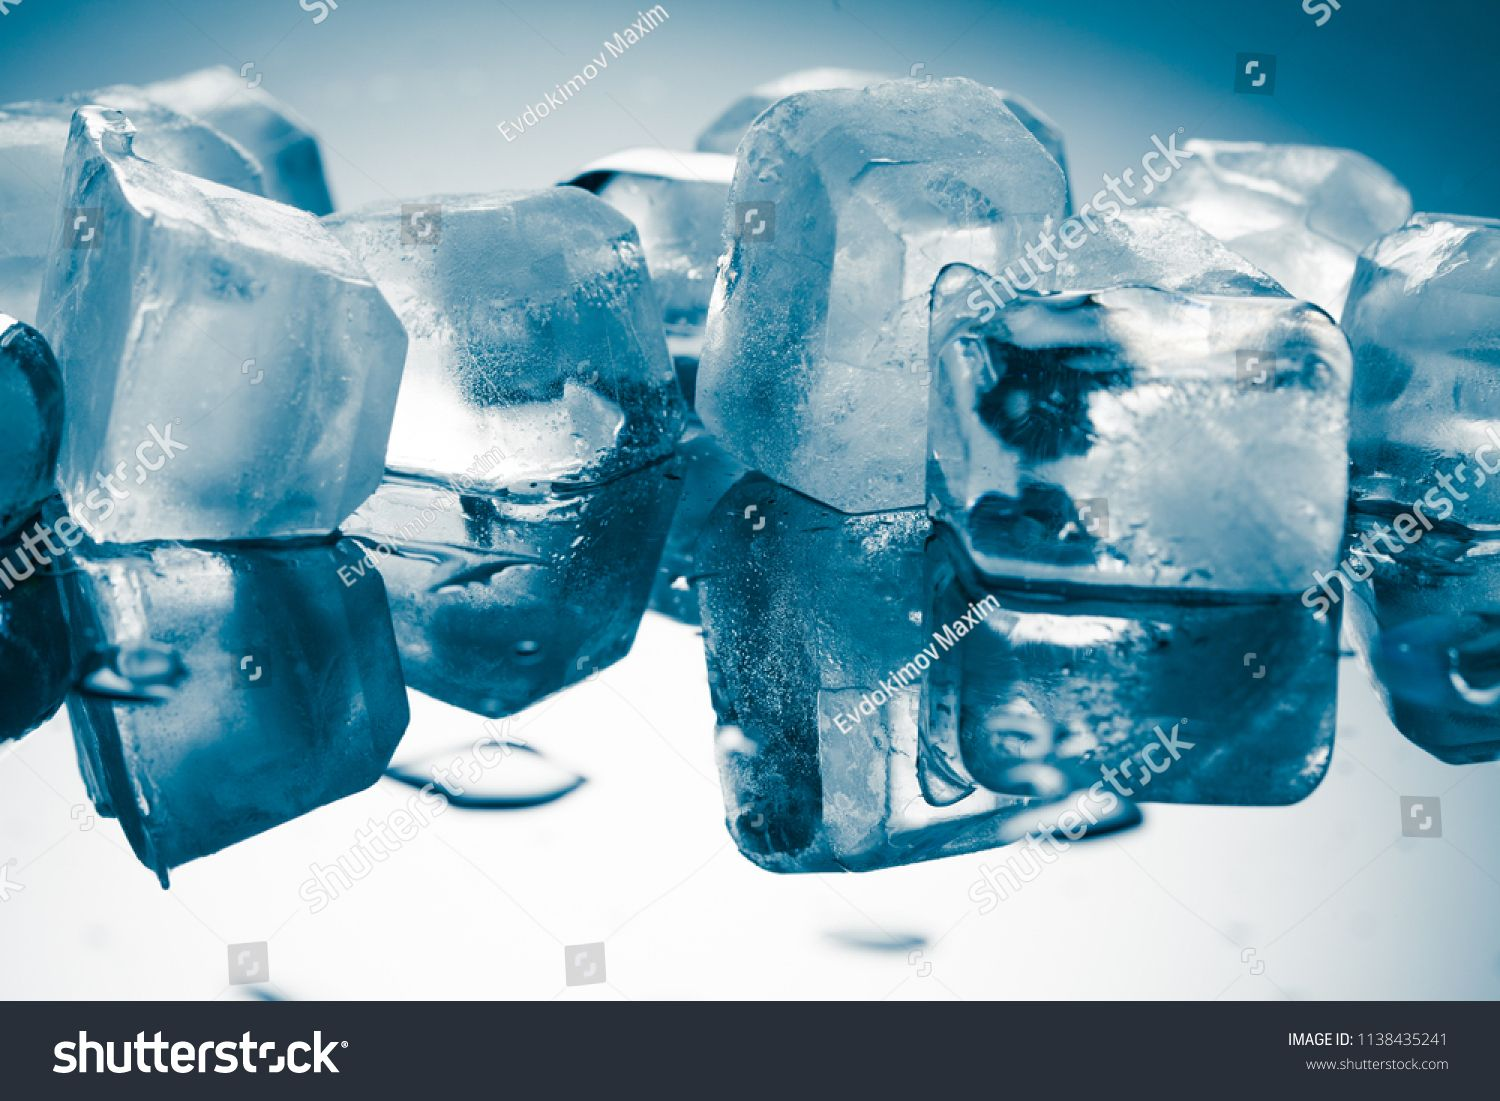 Melting Ice Cubes On A Glossy Table Sponsored